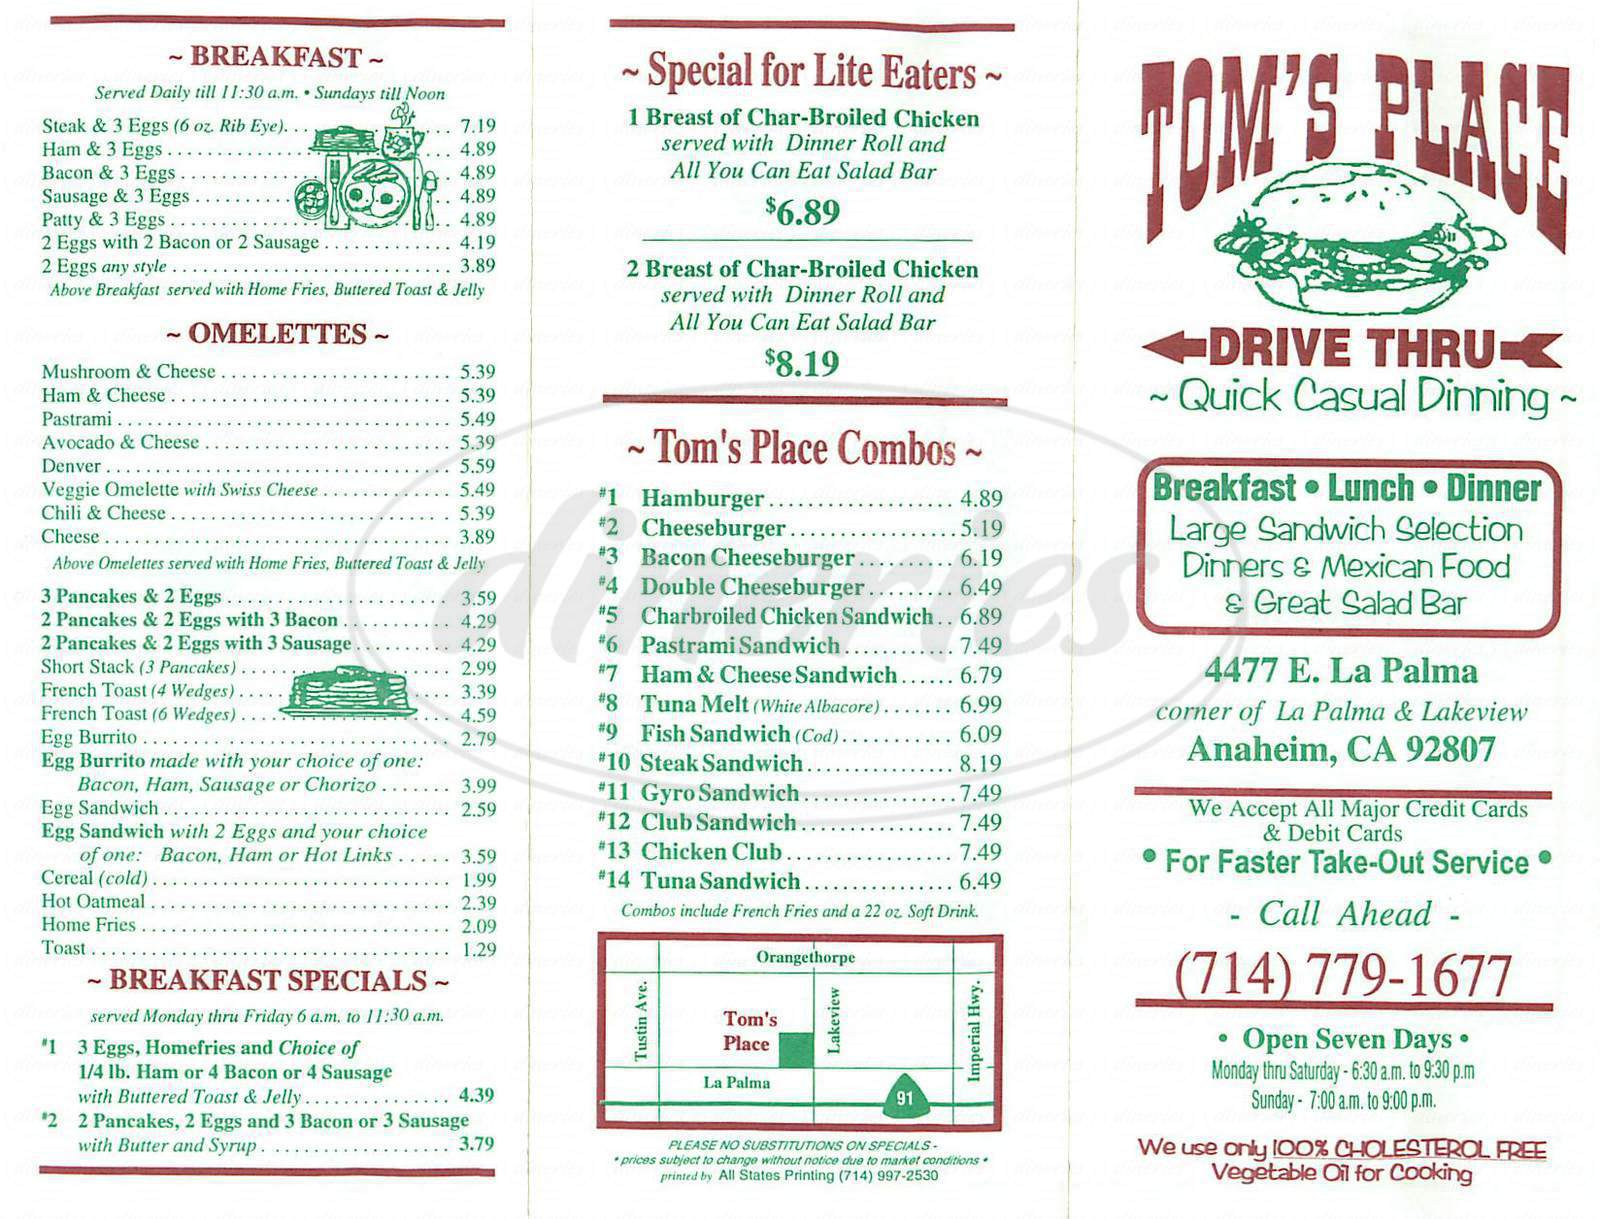 menu for Tom's Place